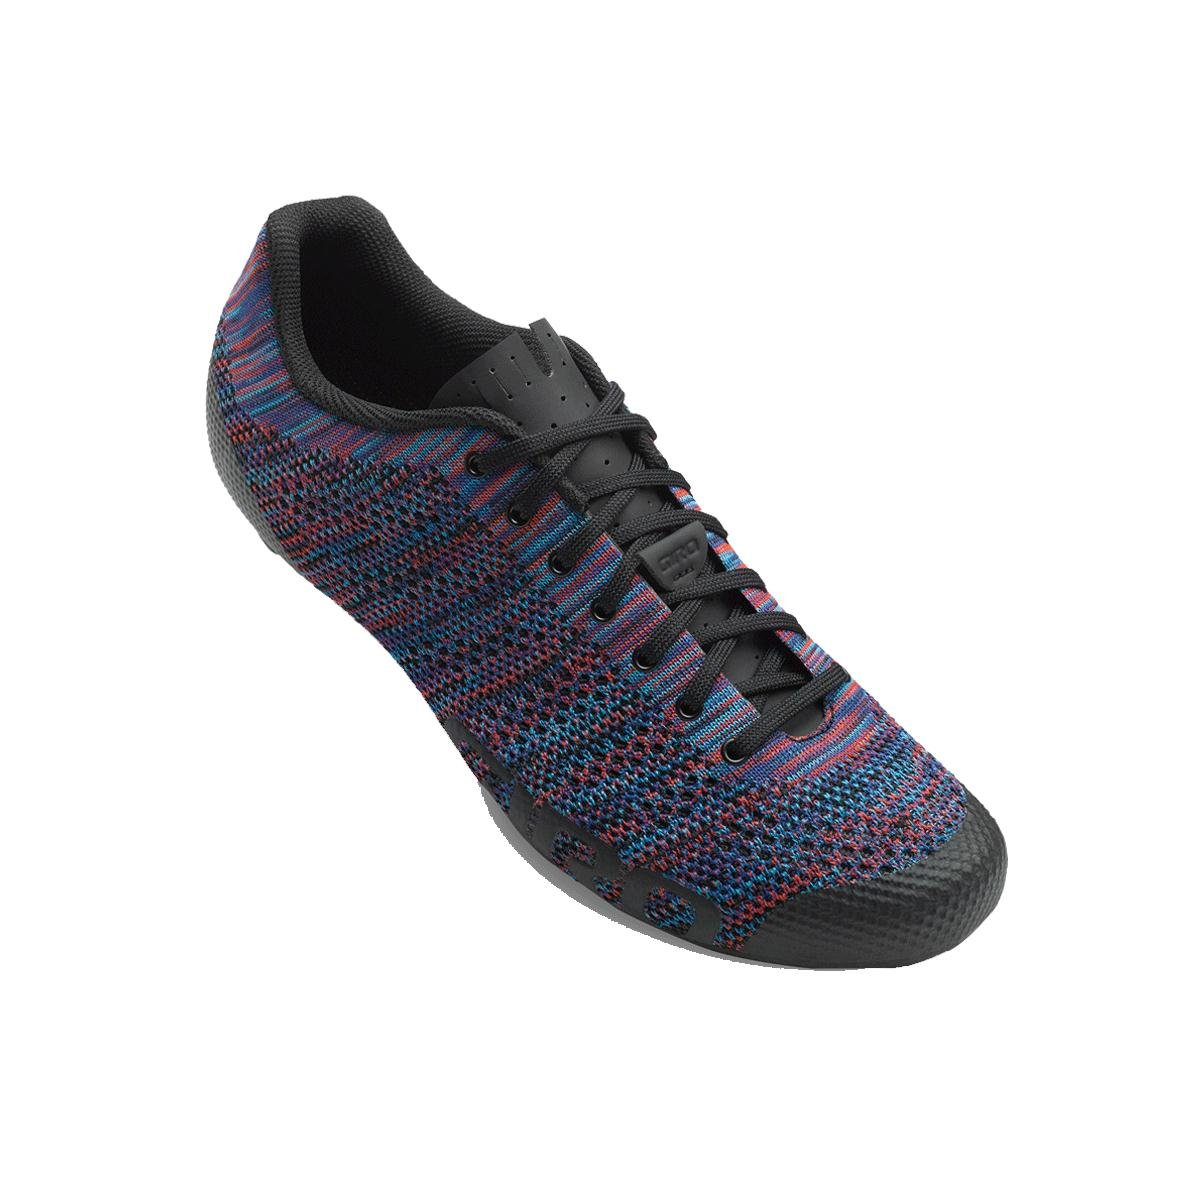 Giro Empire E70 Knit Cycling Shoe - Men's 7090069